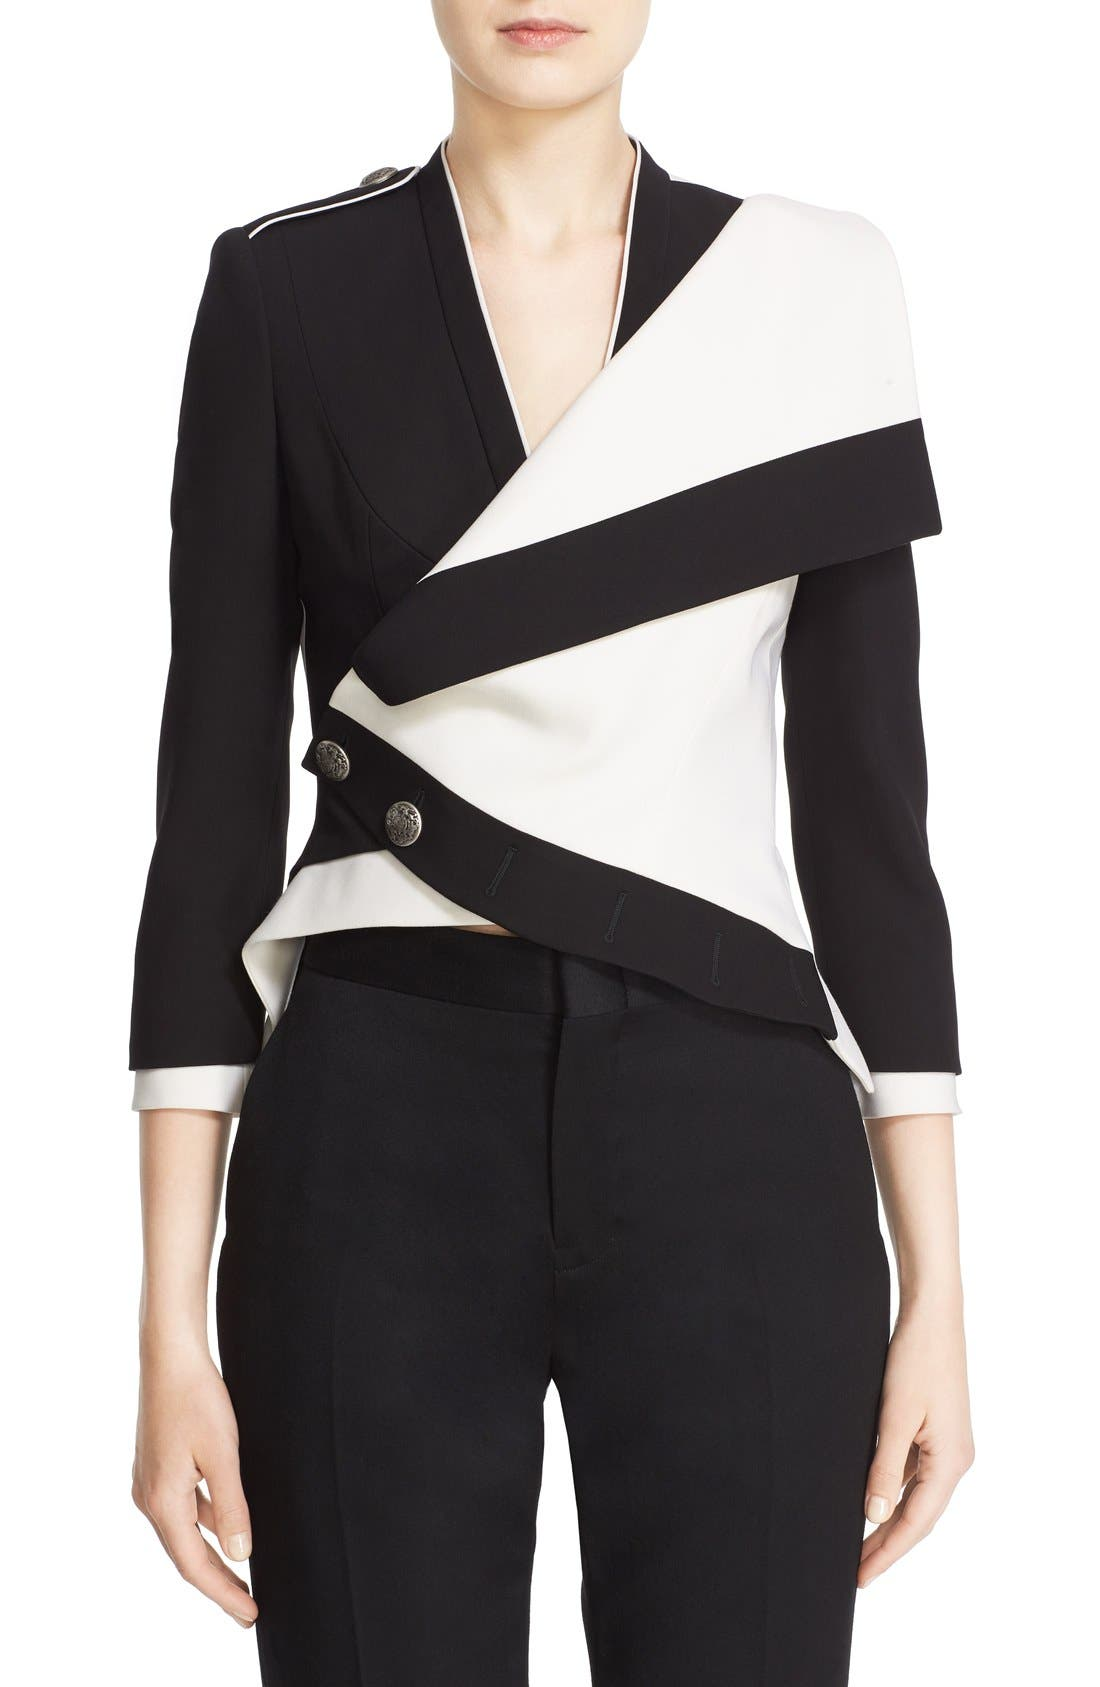 Alternate Image 1 Selected - Alexander McQueen Two-Tone Drape Front Military Jacket